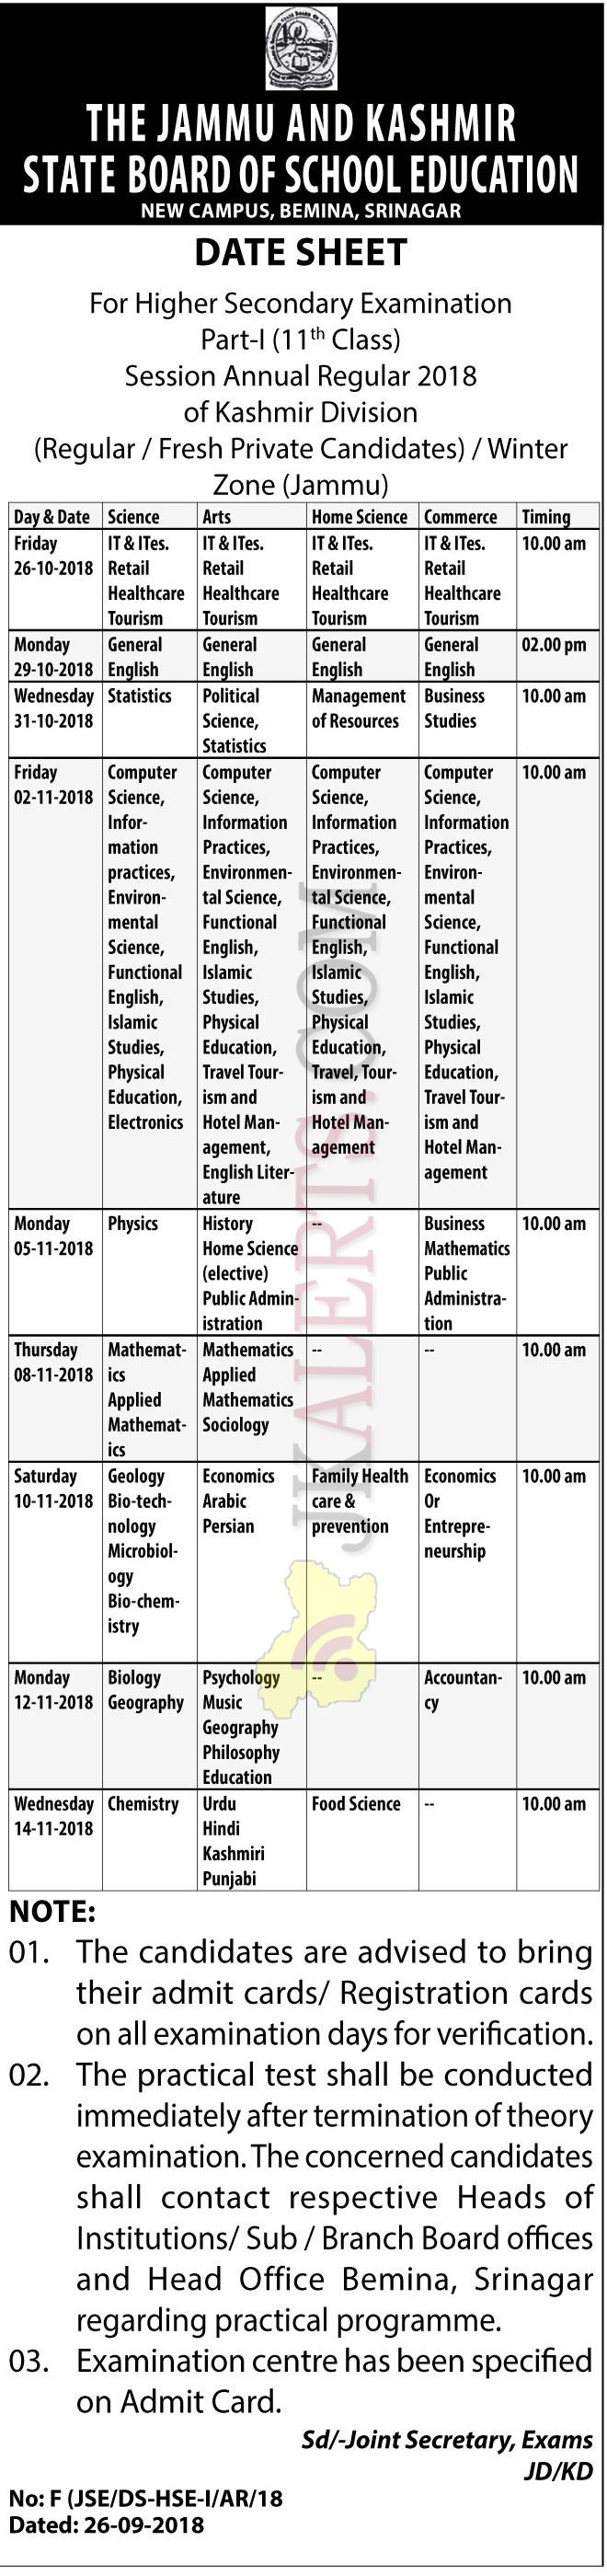 JKBOSE Class 11th Date Sheet